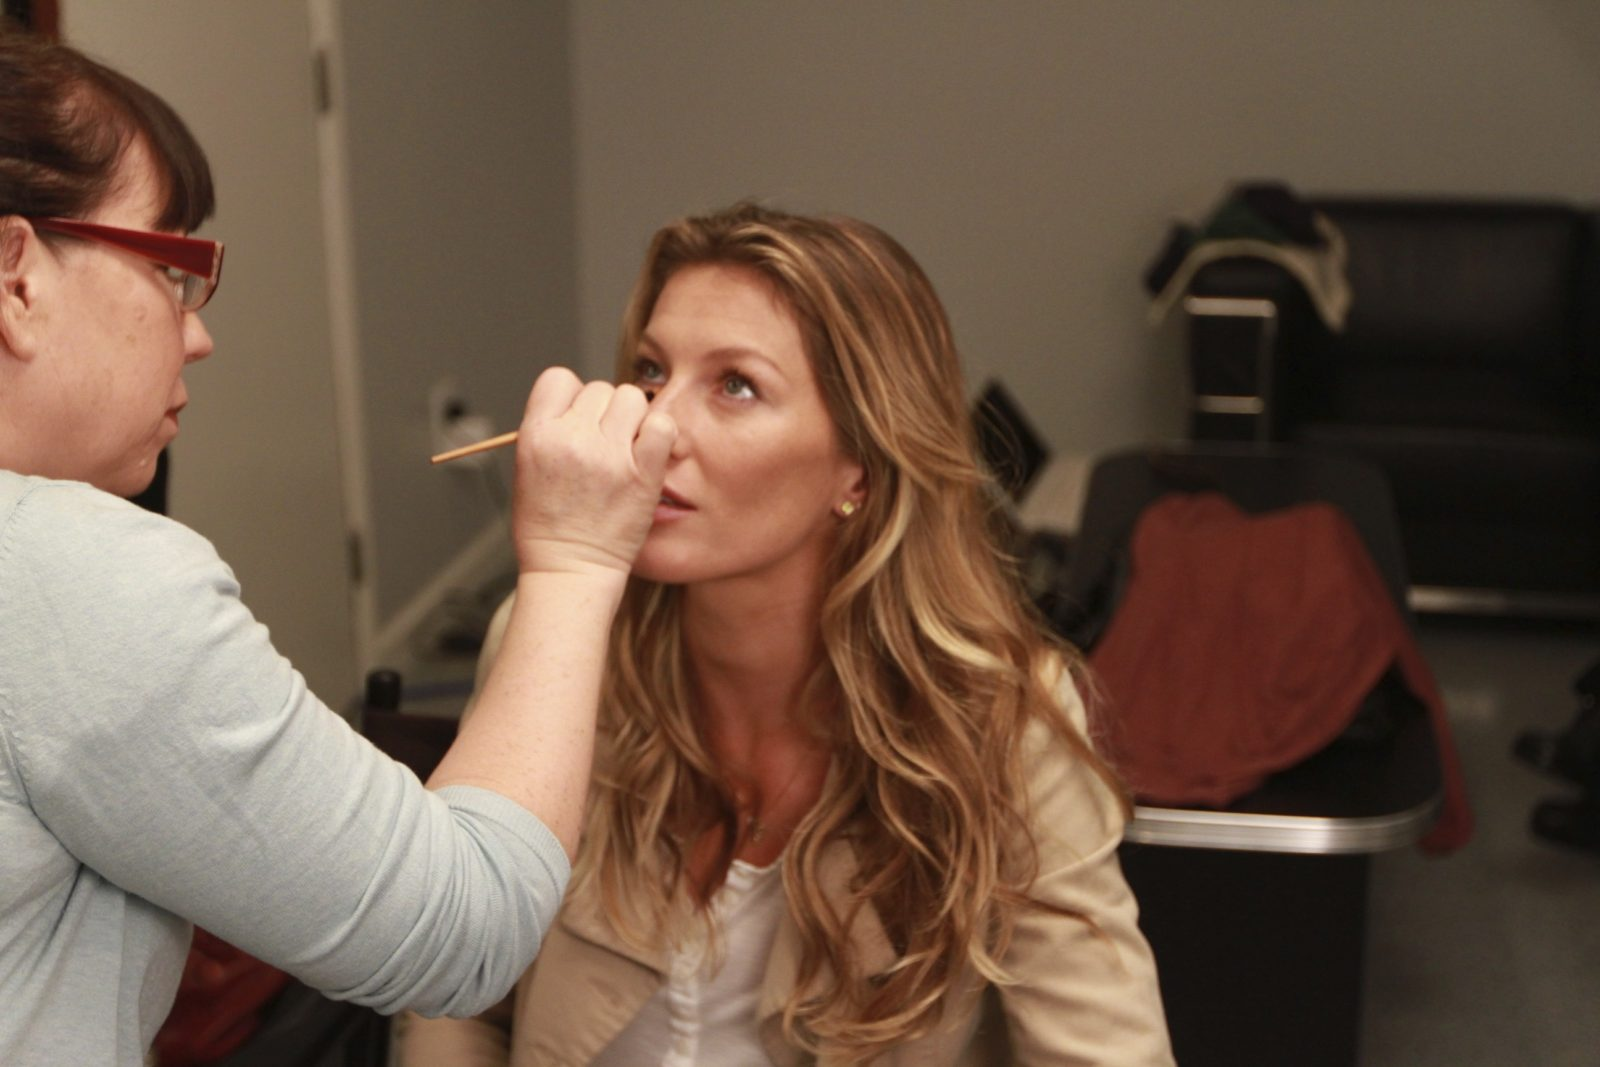 Behind the scenes with gisele bundchen at Loyal Studios